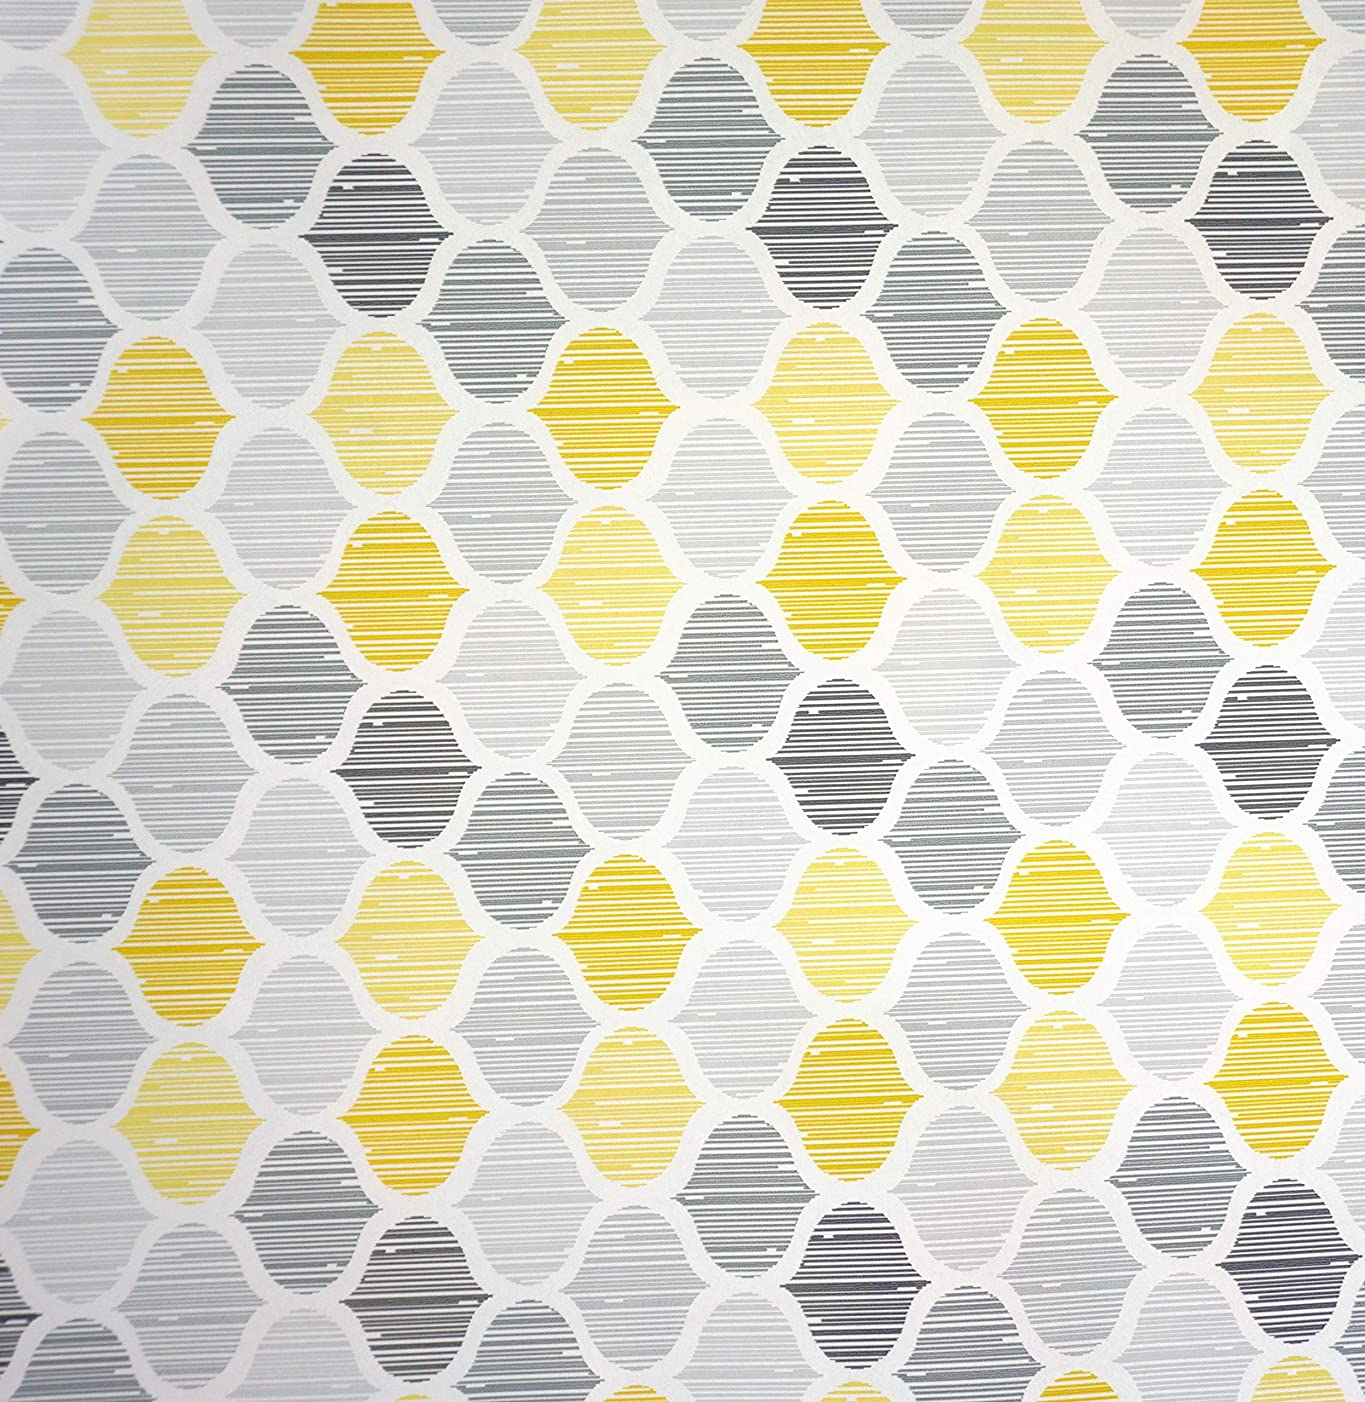 Honeycomb Bee Hive Gift Wrapping Paper Flat Sheet - 24